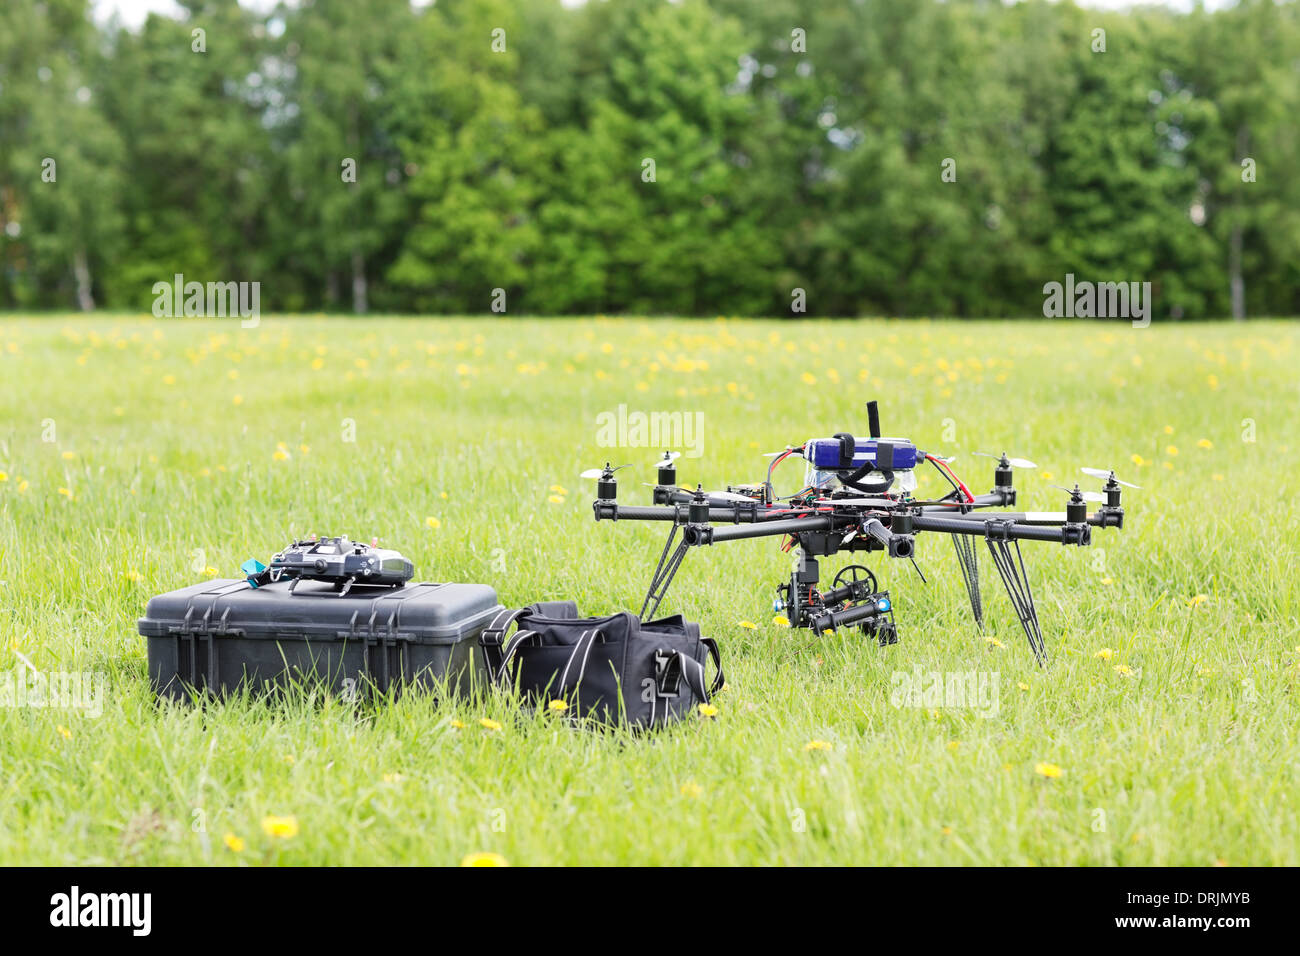 UAV Helicopter With Toolbox And Bag - Stock Image